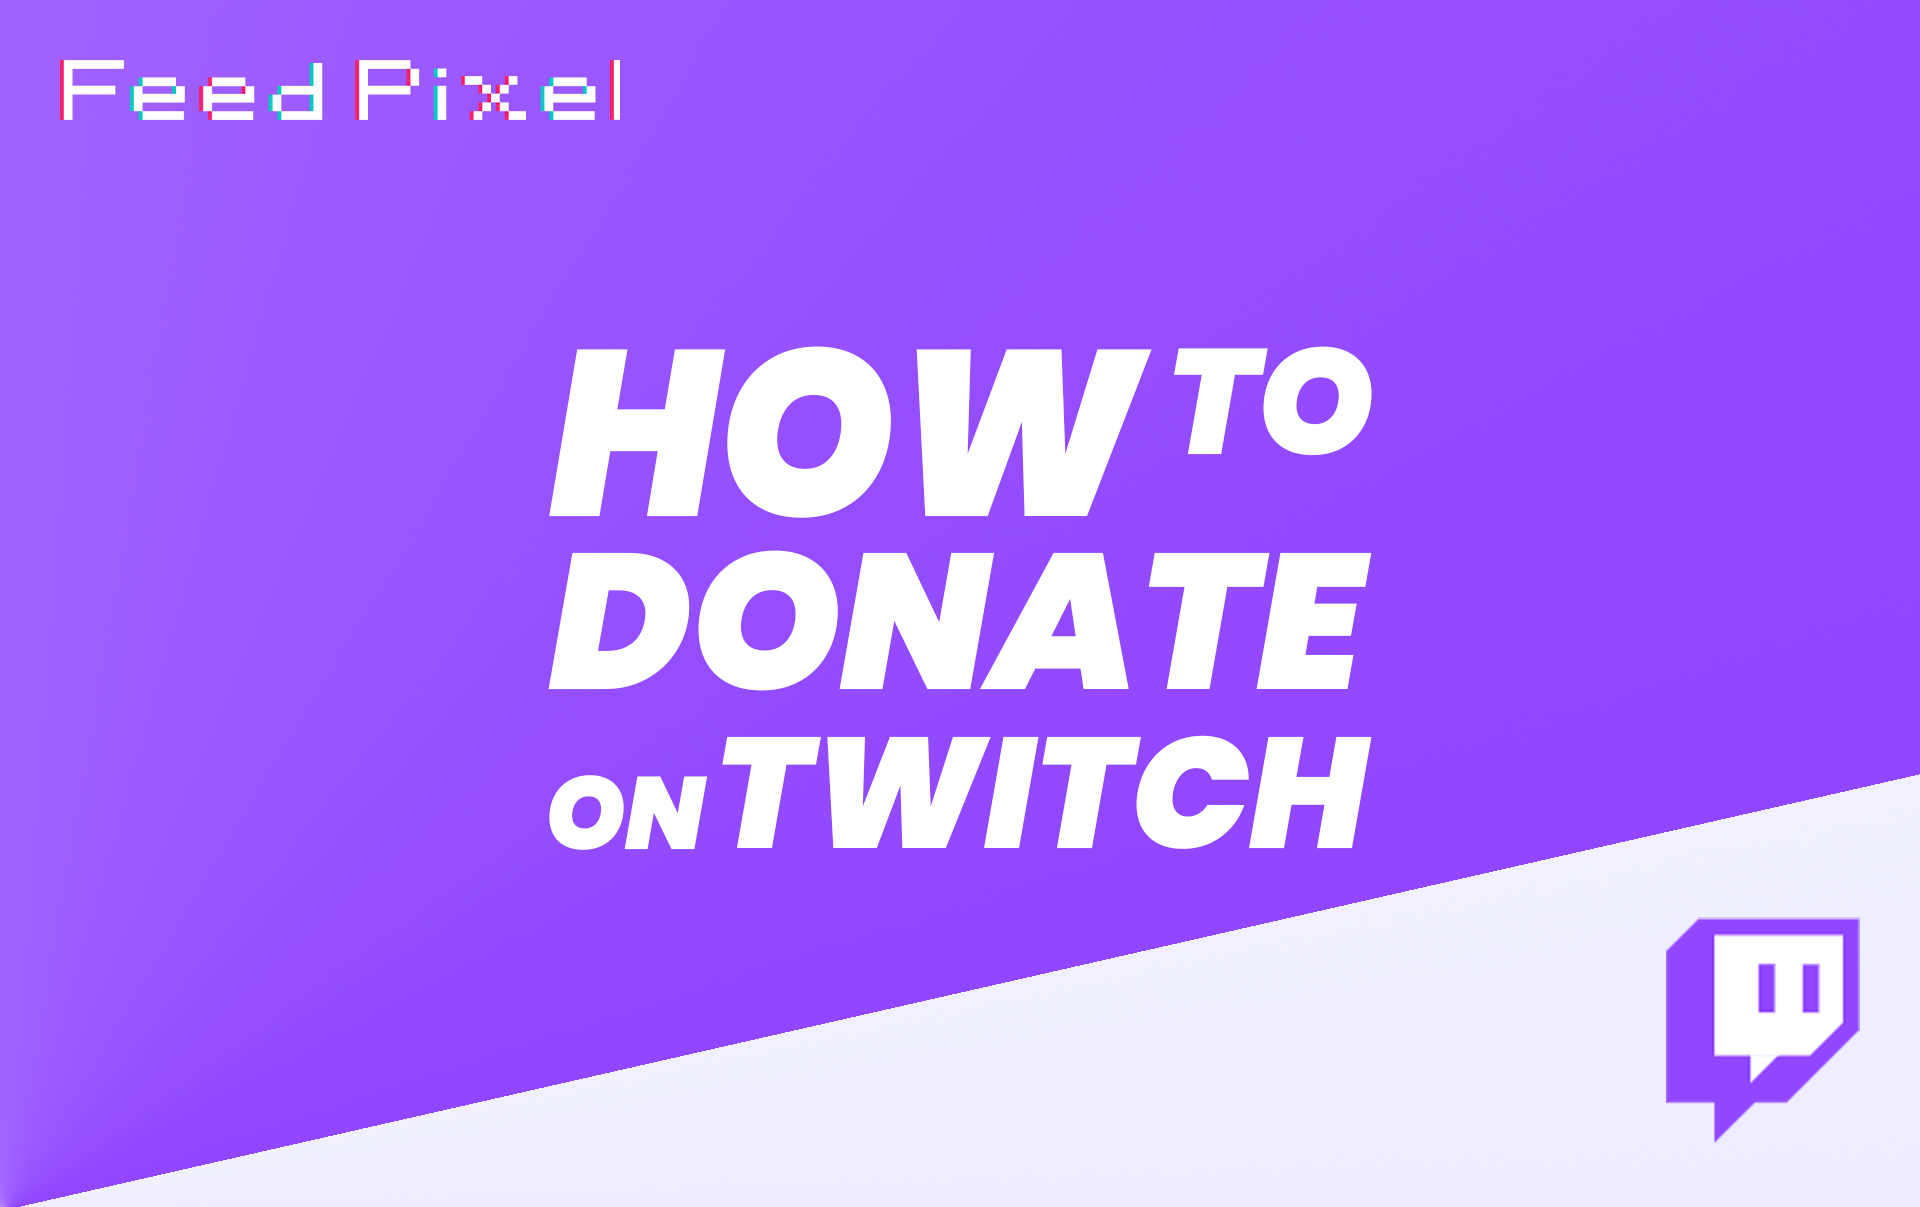 How To Donate On Twitch?